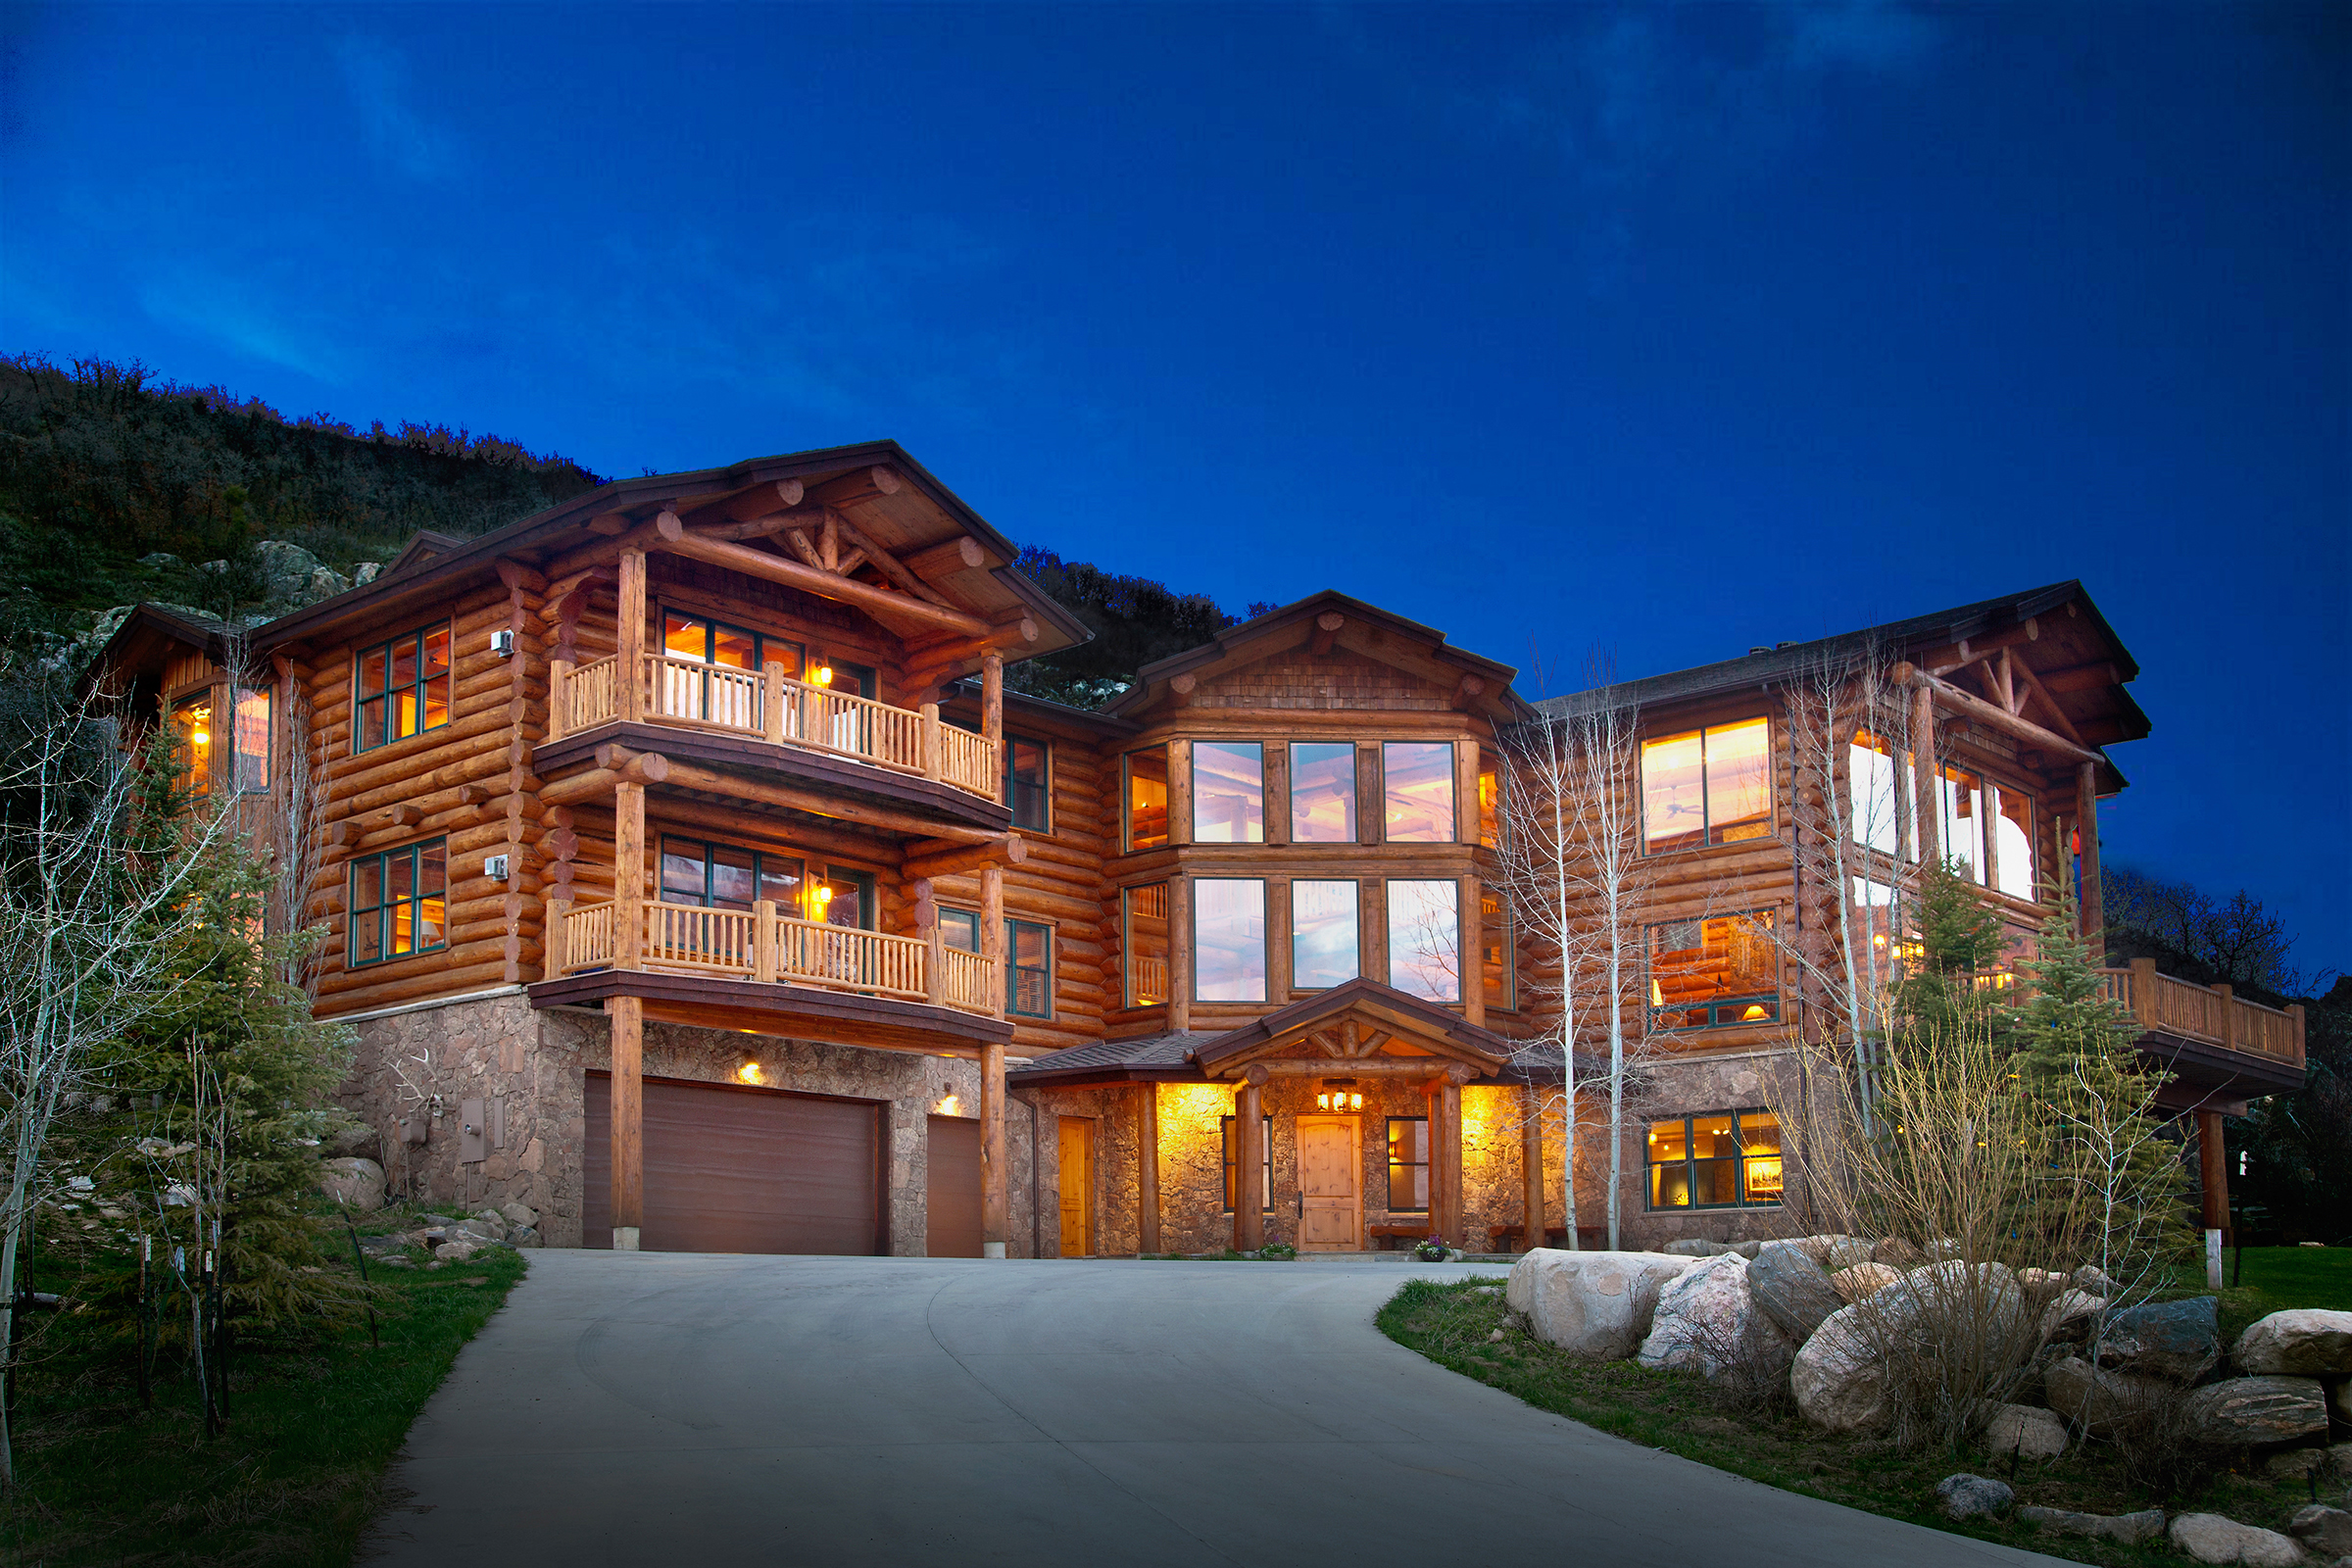 Single Family Home for Sale at Sanctuary Log Home 2600 Heavenly View Steamboat Springs, Colorado, 80487 United States